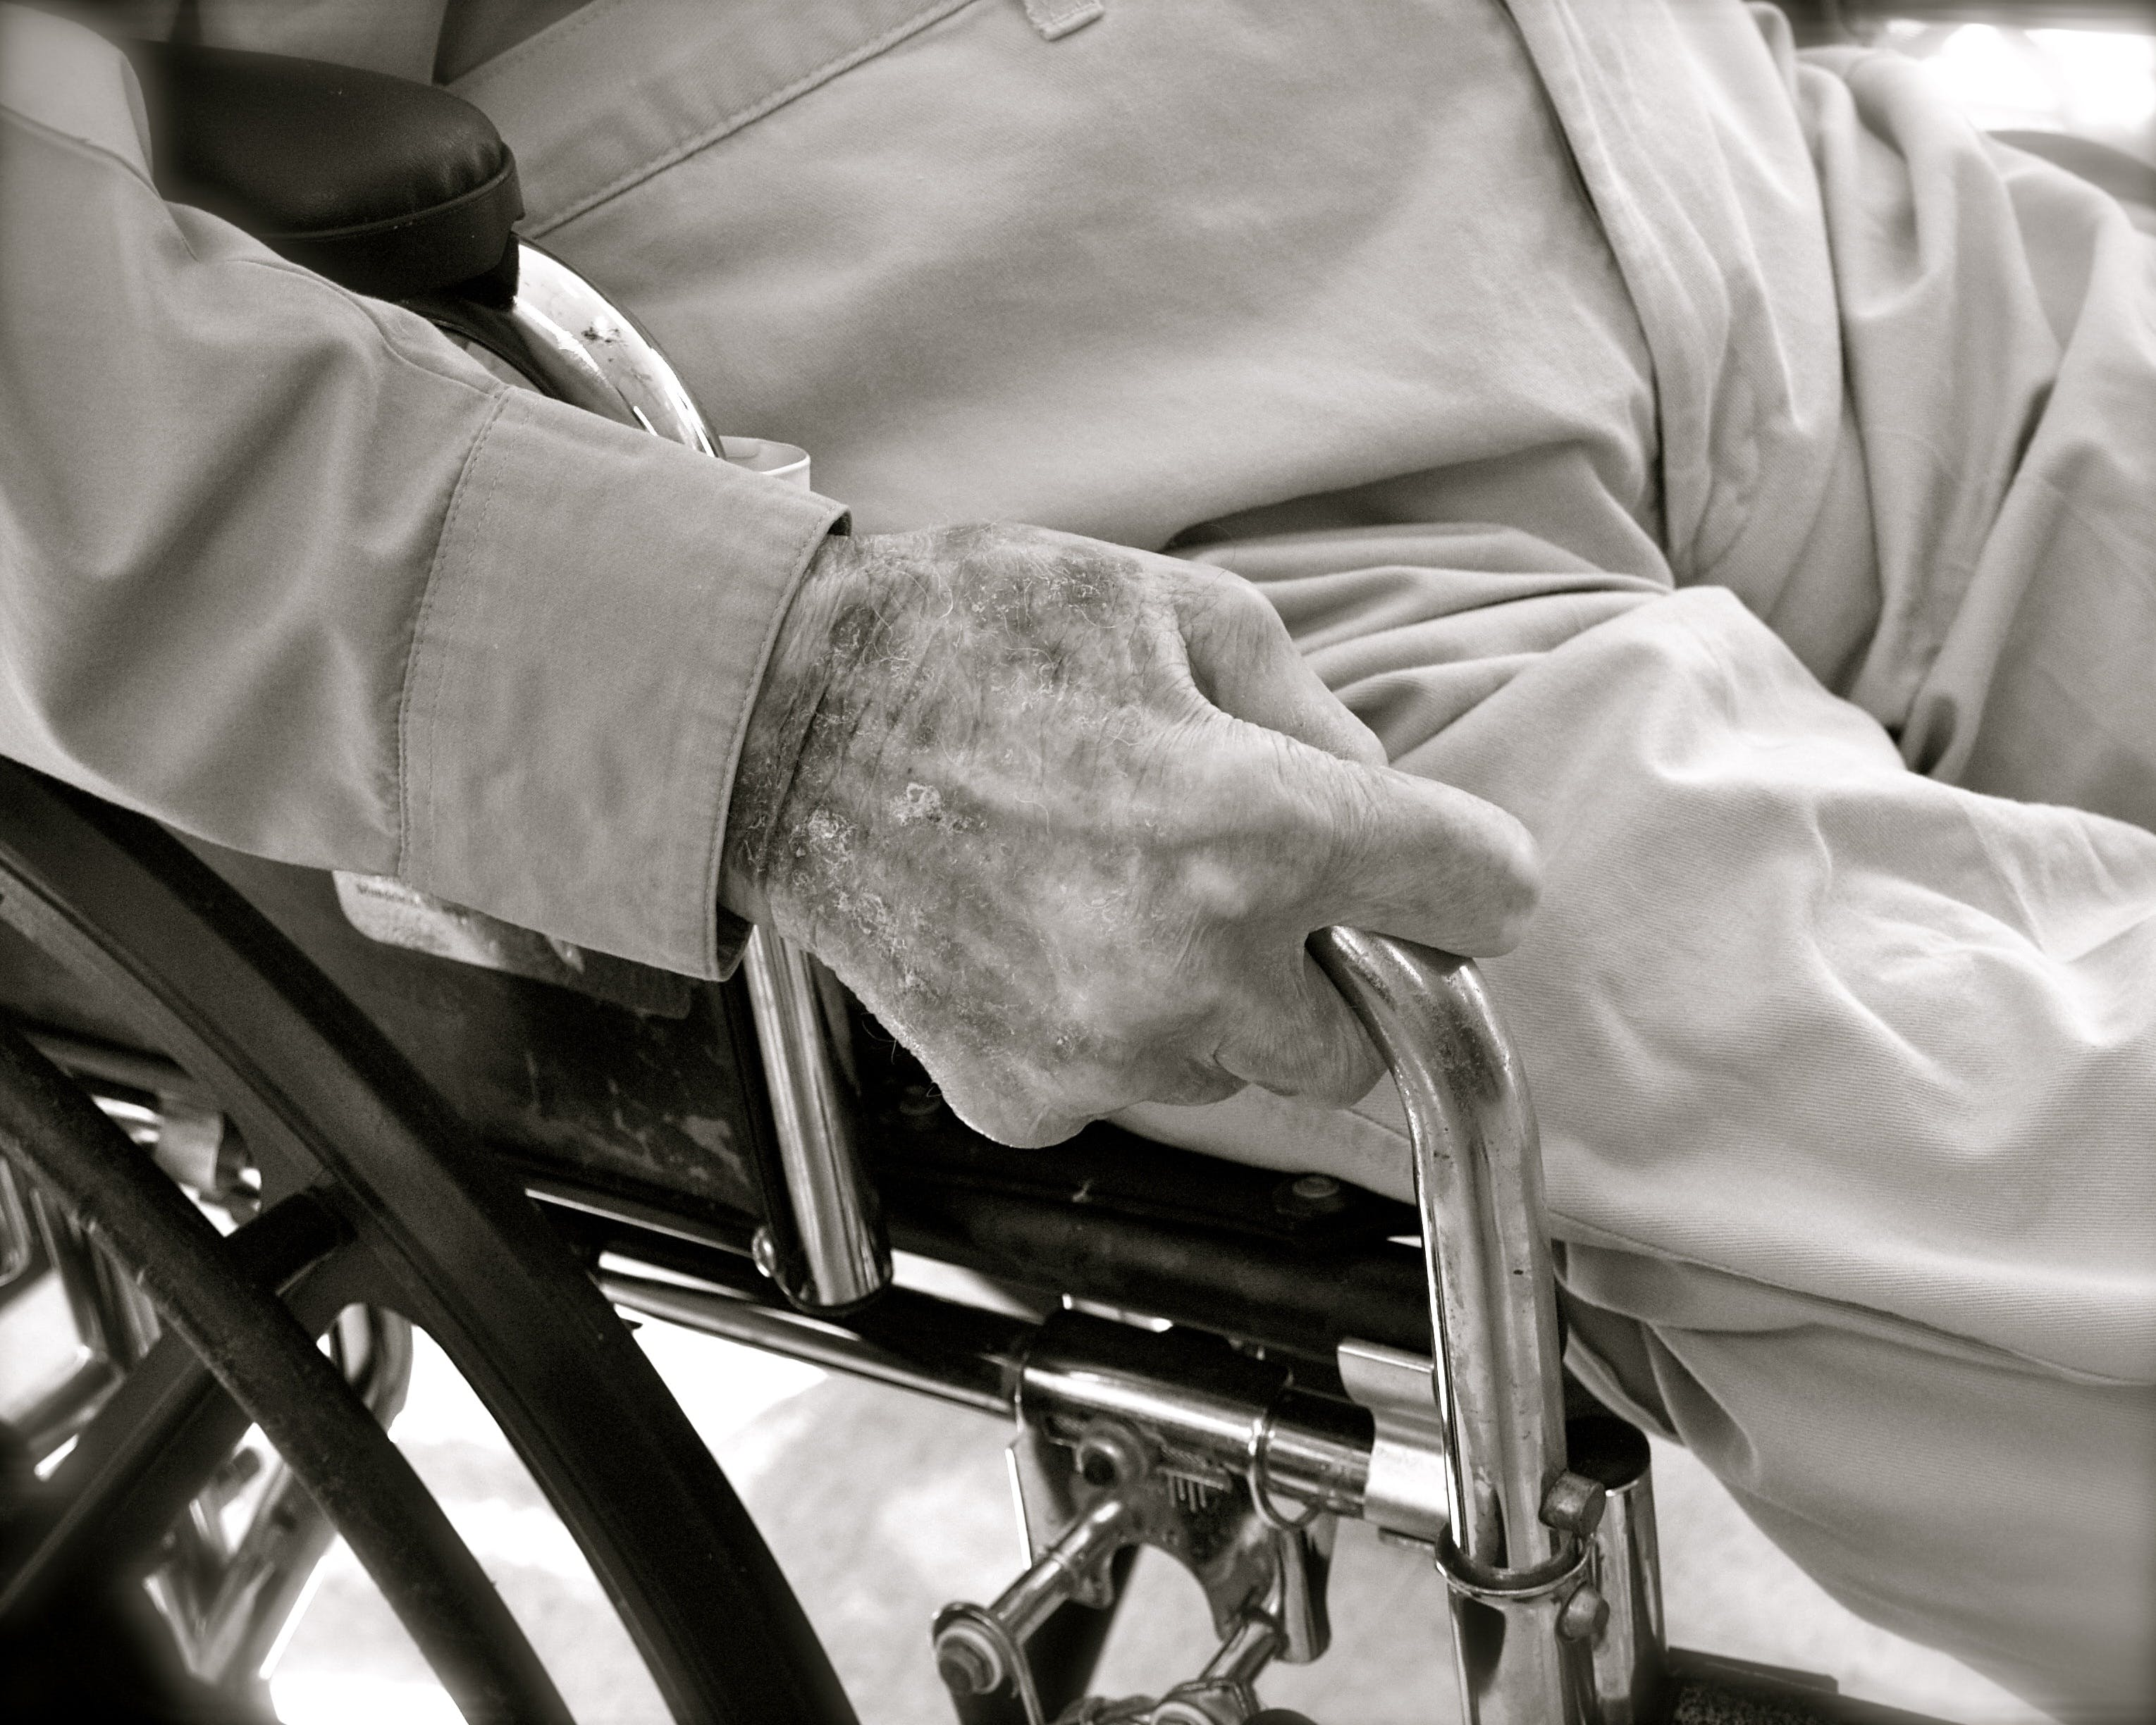 Free stock photo of person, hand, medical, senior